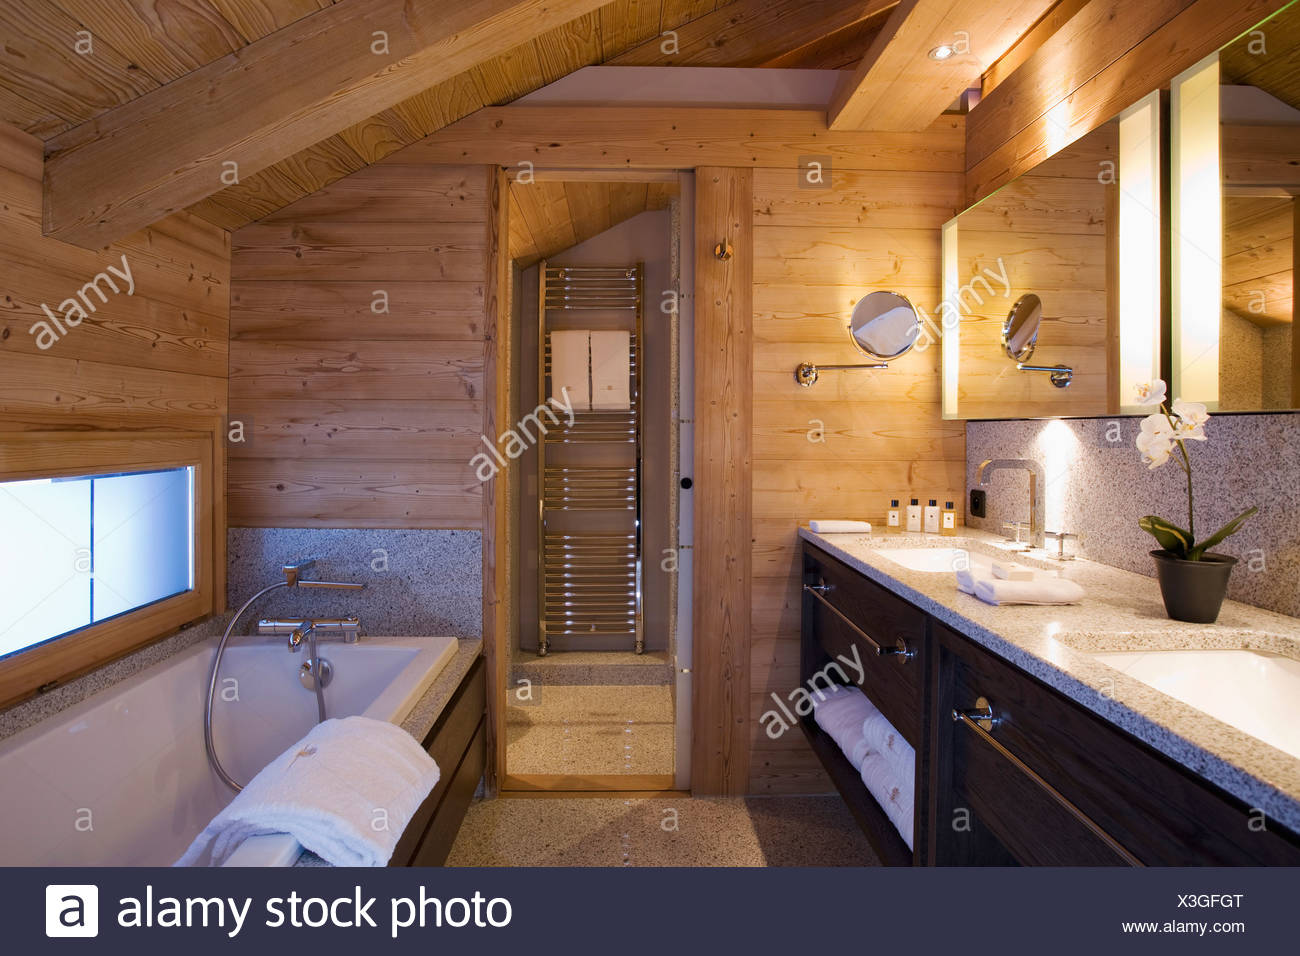 Wooden Walls And Sloping Ceiling Of Bathroom In Modern Alpine Chalet